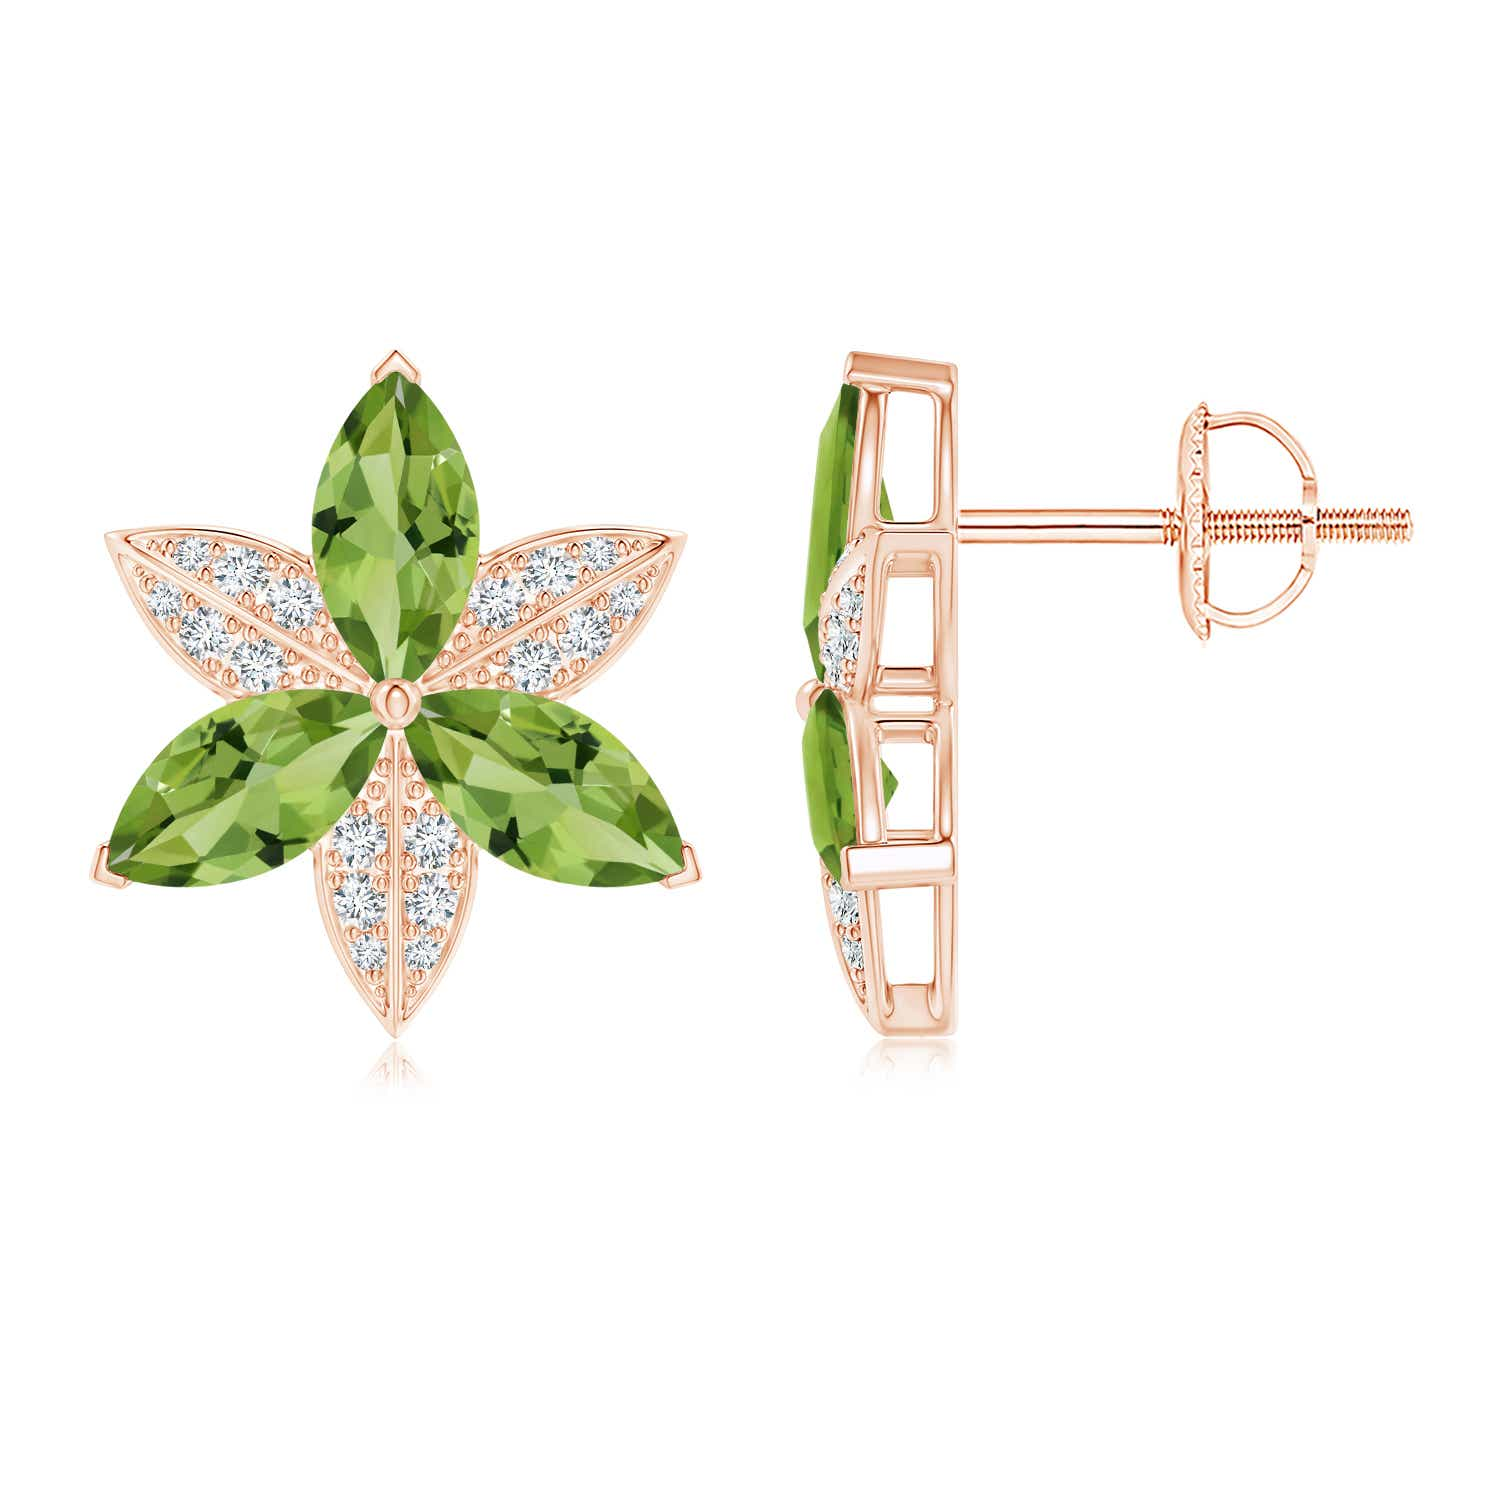 Angara Pear-Shaped Peridot and Diamond Flower Stud Earrings Q9nRny9